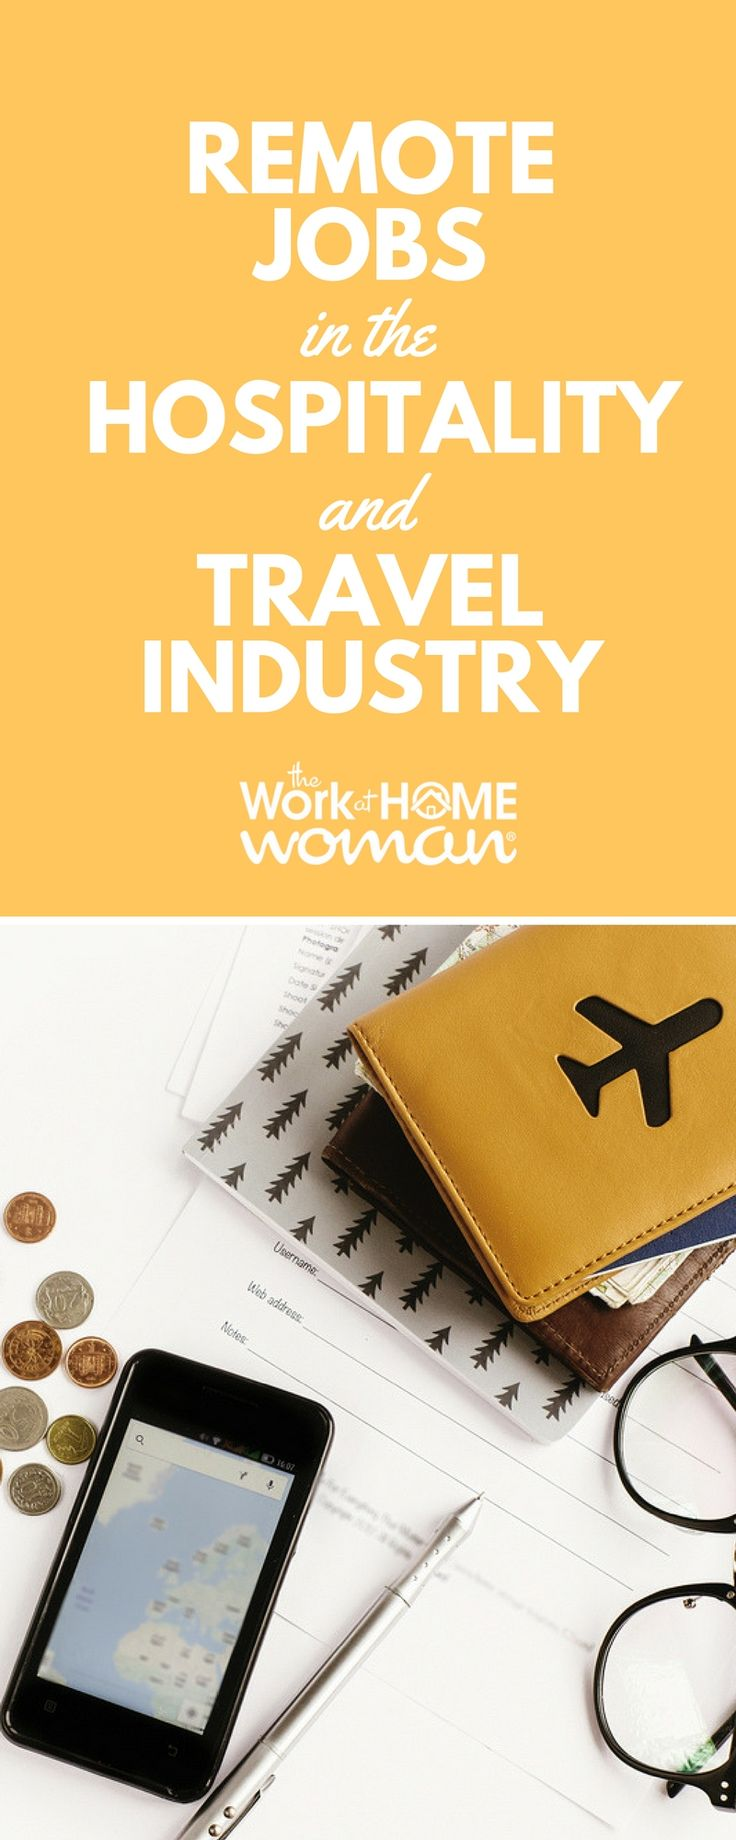 Would you like to earn discounted and free travel perks? If so, you're in luck! There are lots of work-at-home opportunities within the hospitality, tourism, and travel industries. Whether you're looking to work for an airline, hotel, or cruise line, there's something that will fulfill your wanderlust. See who's hiring here! #workfromhome #travel #job